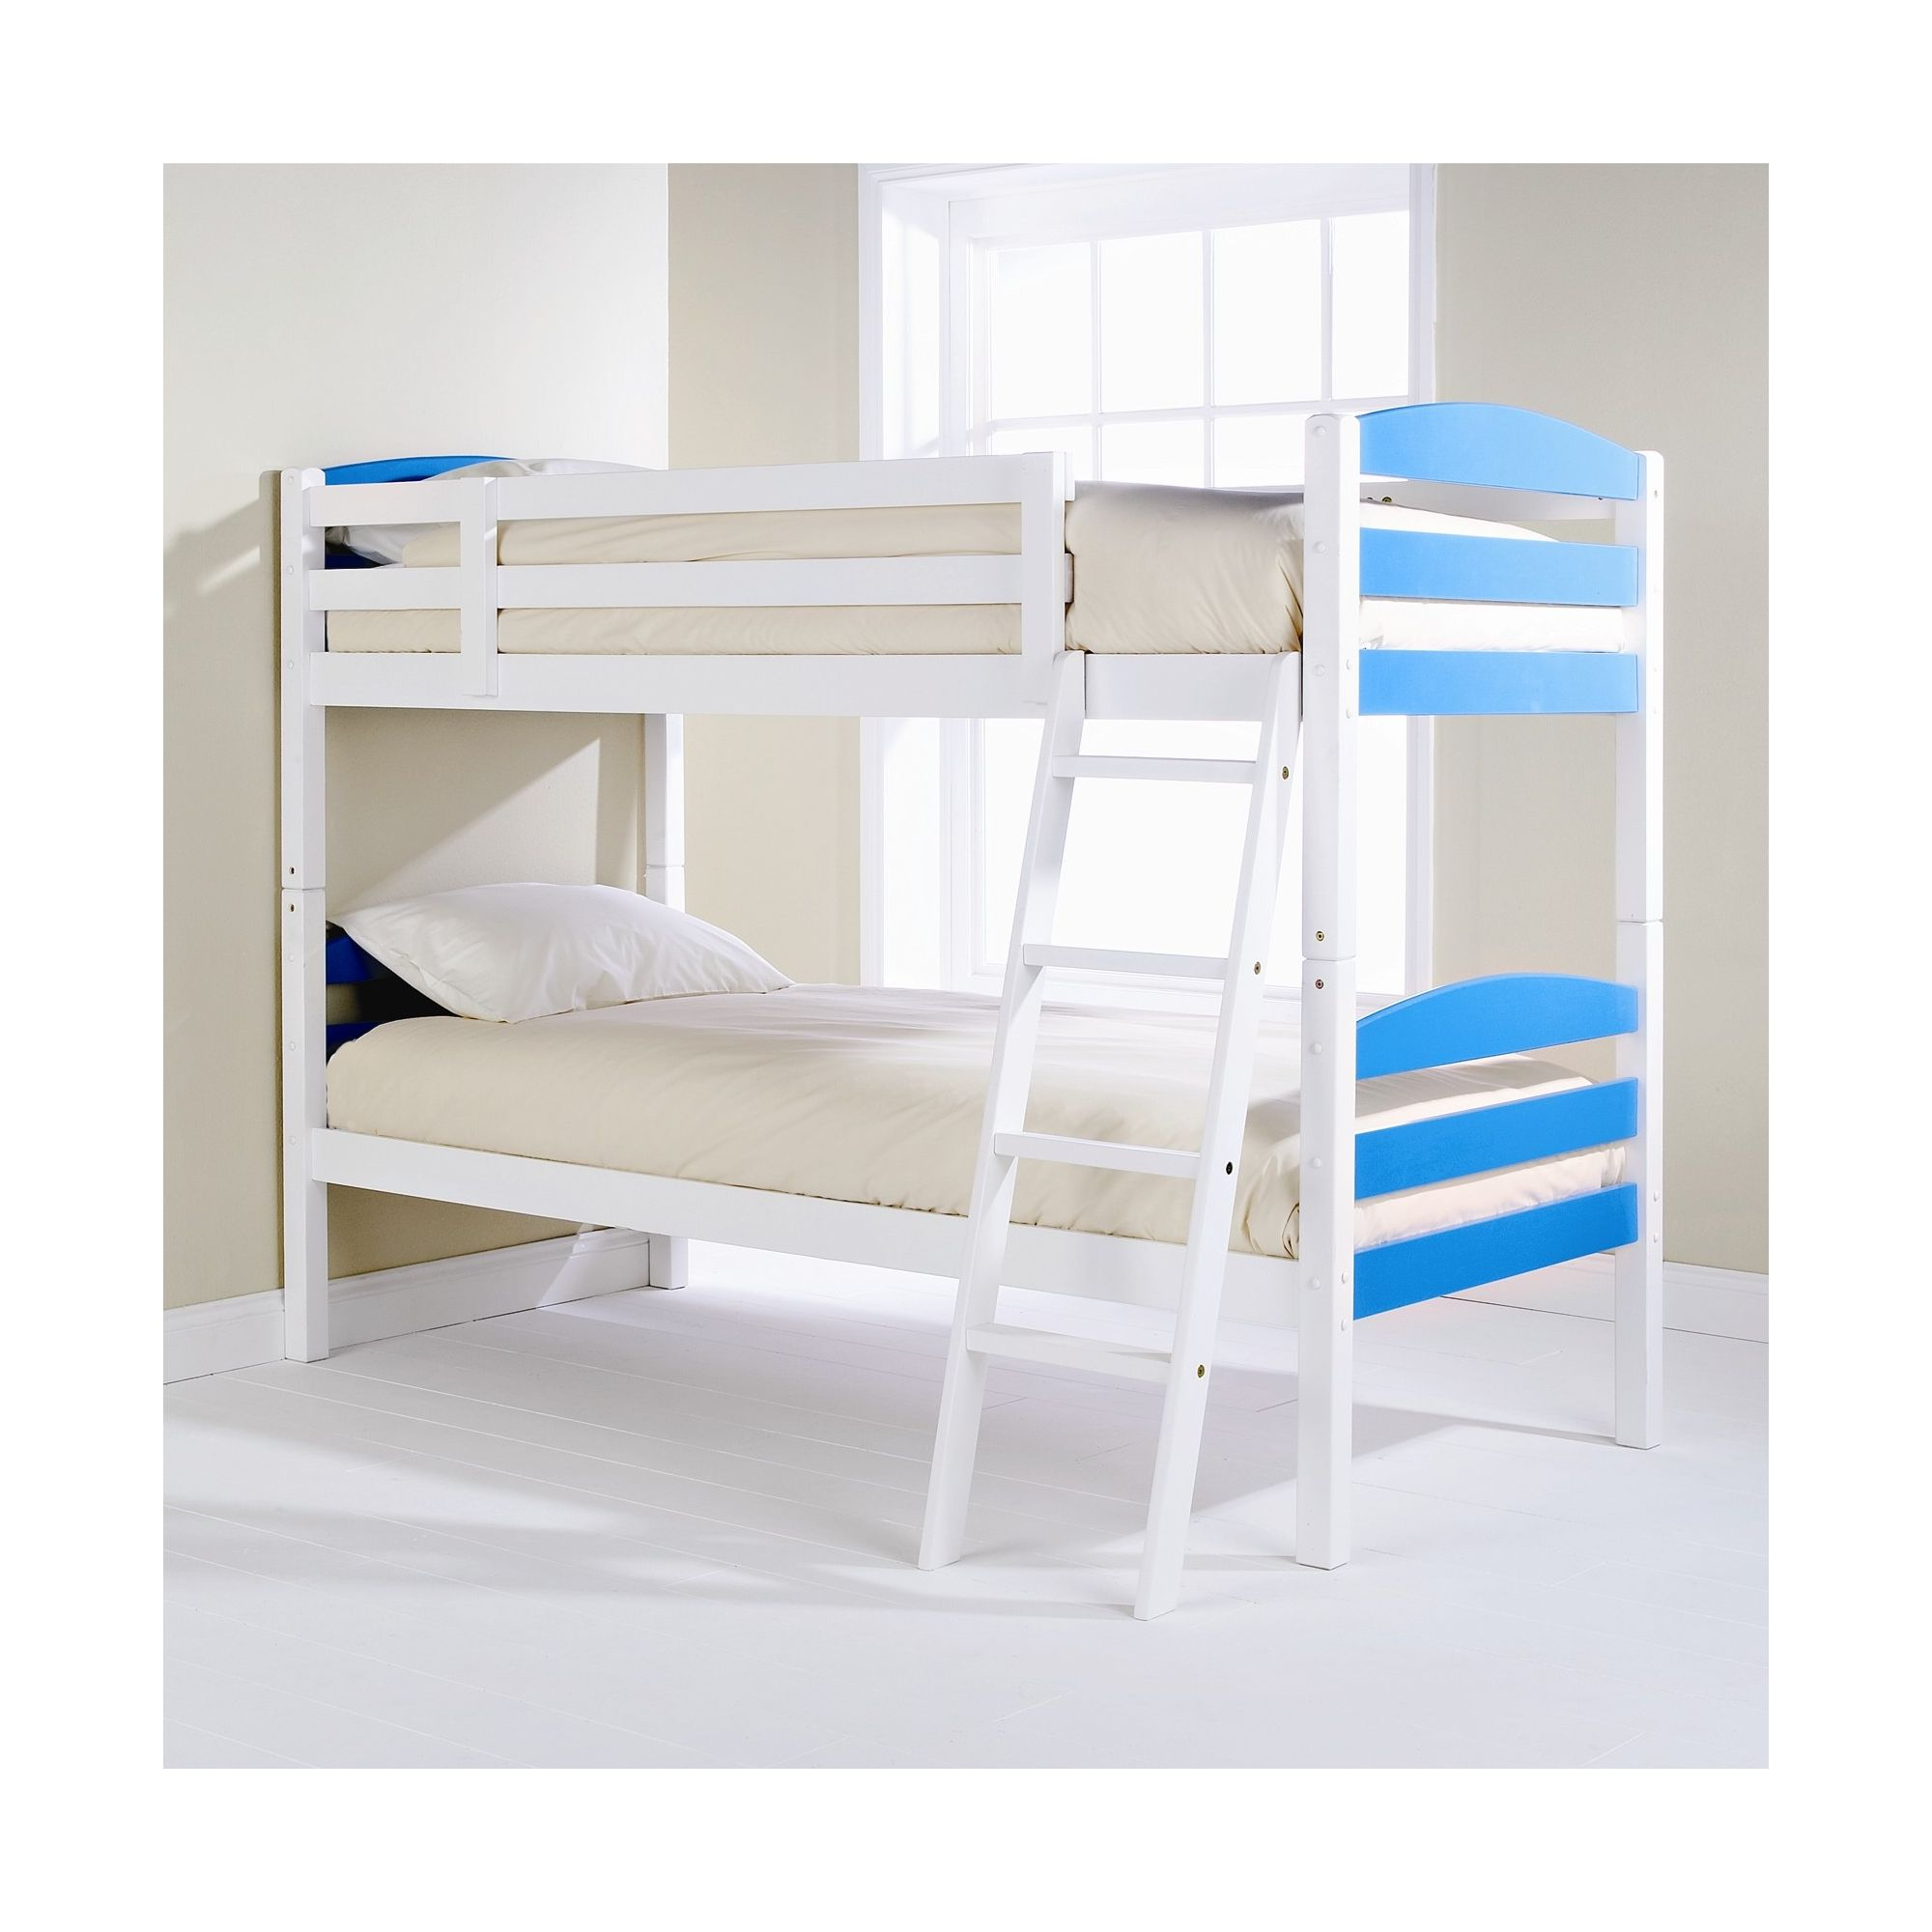 Elements Childrens Bunk Bed - Blue / White at Tesco Direct